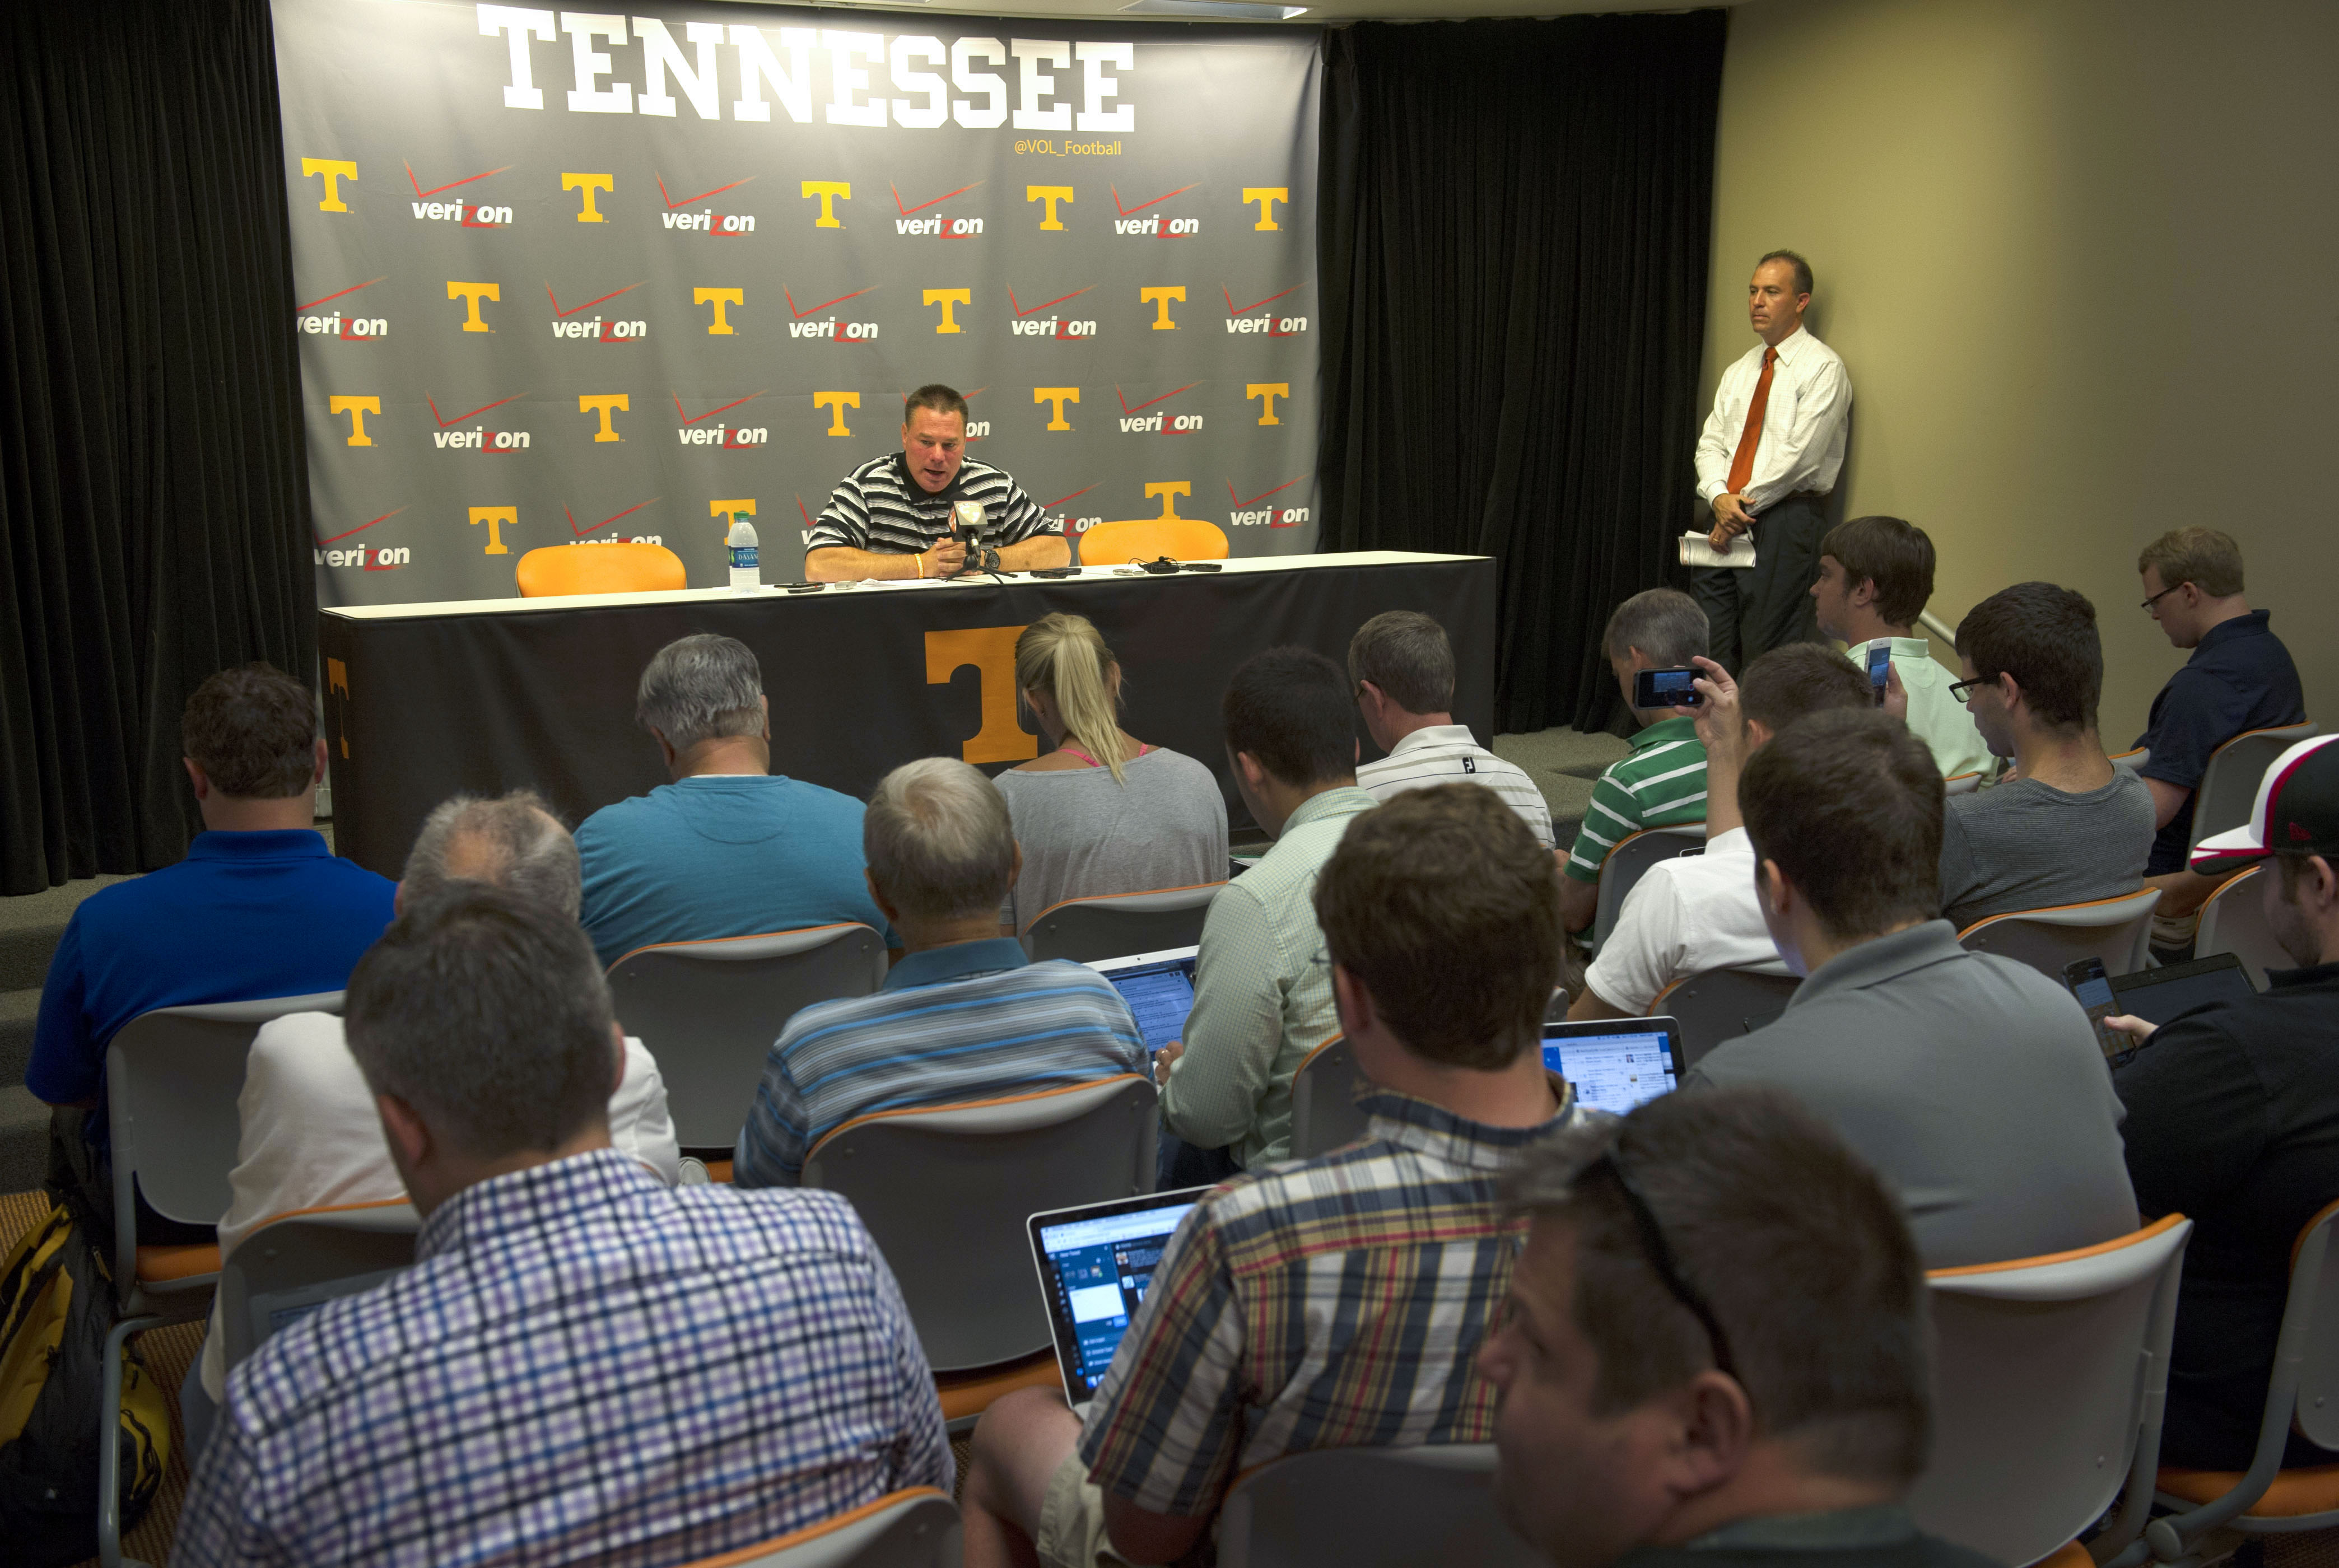 University of Tennessee football coach Butch Jones addresses the media during a preseason luncheon Monday, Aug. 3, 2015, in Knoxville, Tenn. The teams first NCAA college football practice of the season is Tuesday. (Amy Smotherman Burgess/Knoxville News Se